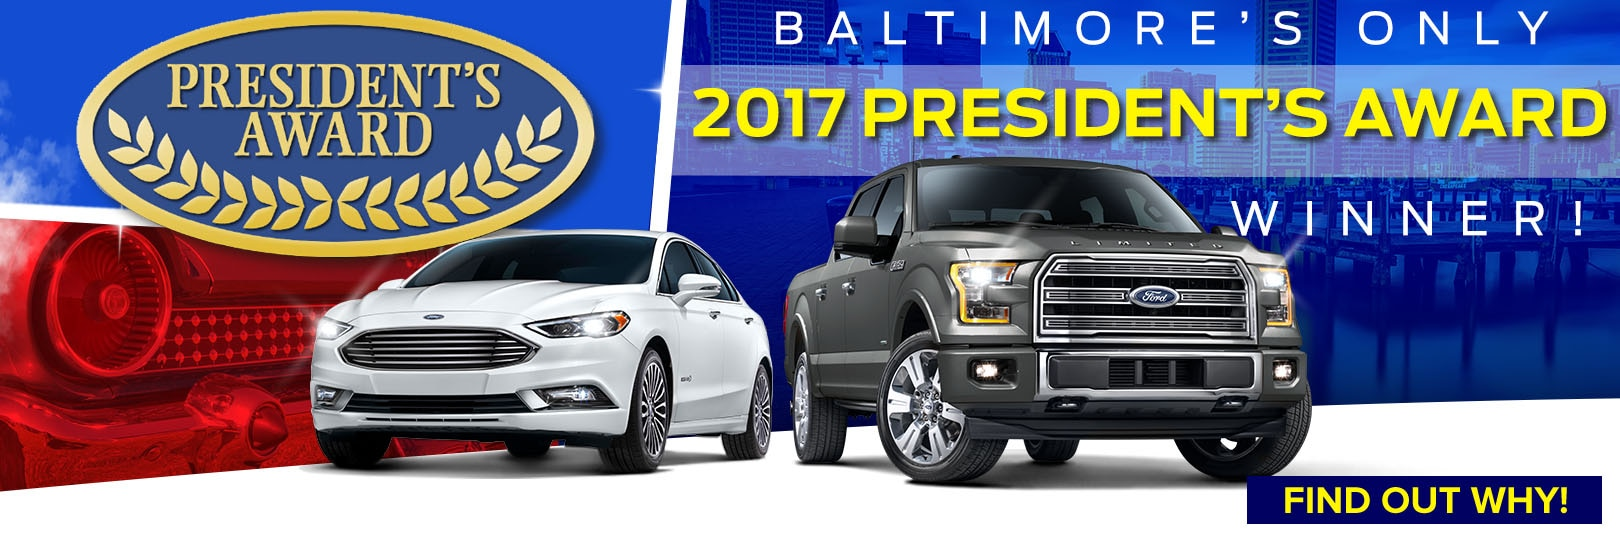 New ford dealer inventory in baltimore md serving towson perry hall parkville essex nottingham and rosedale